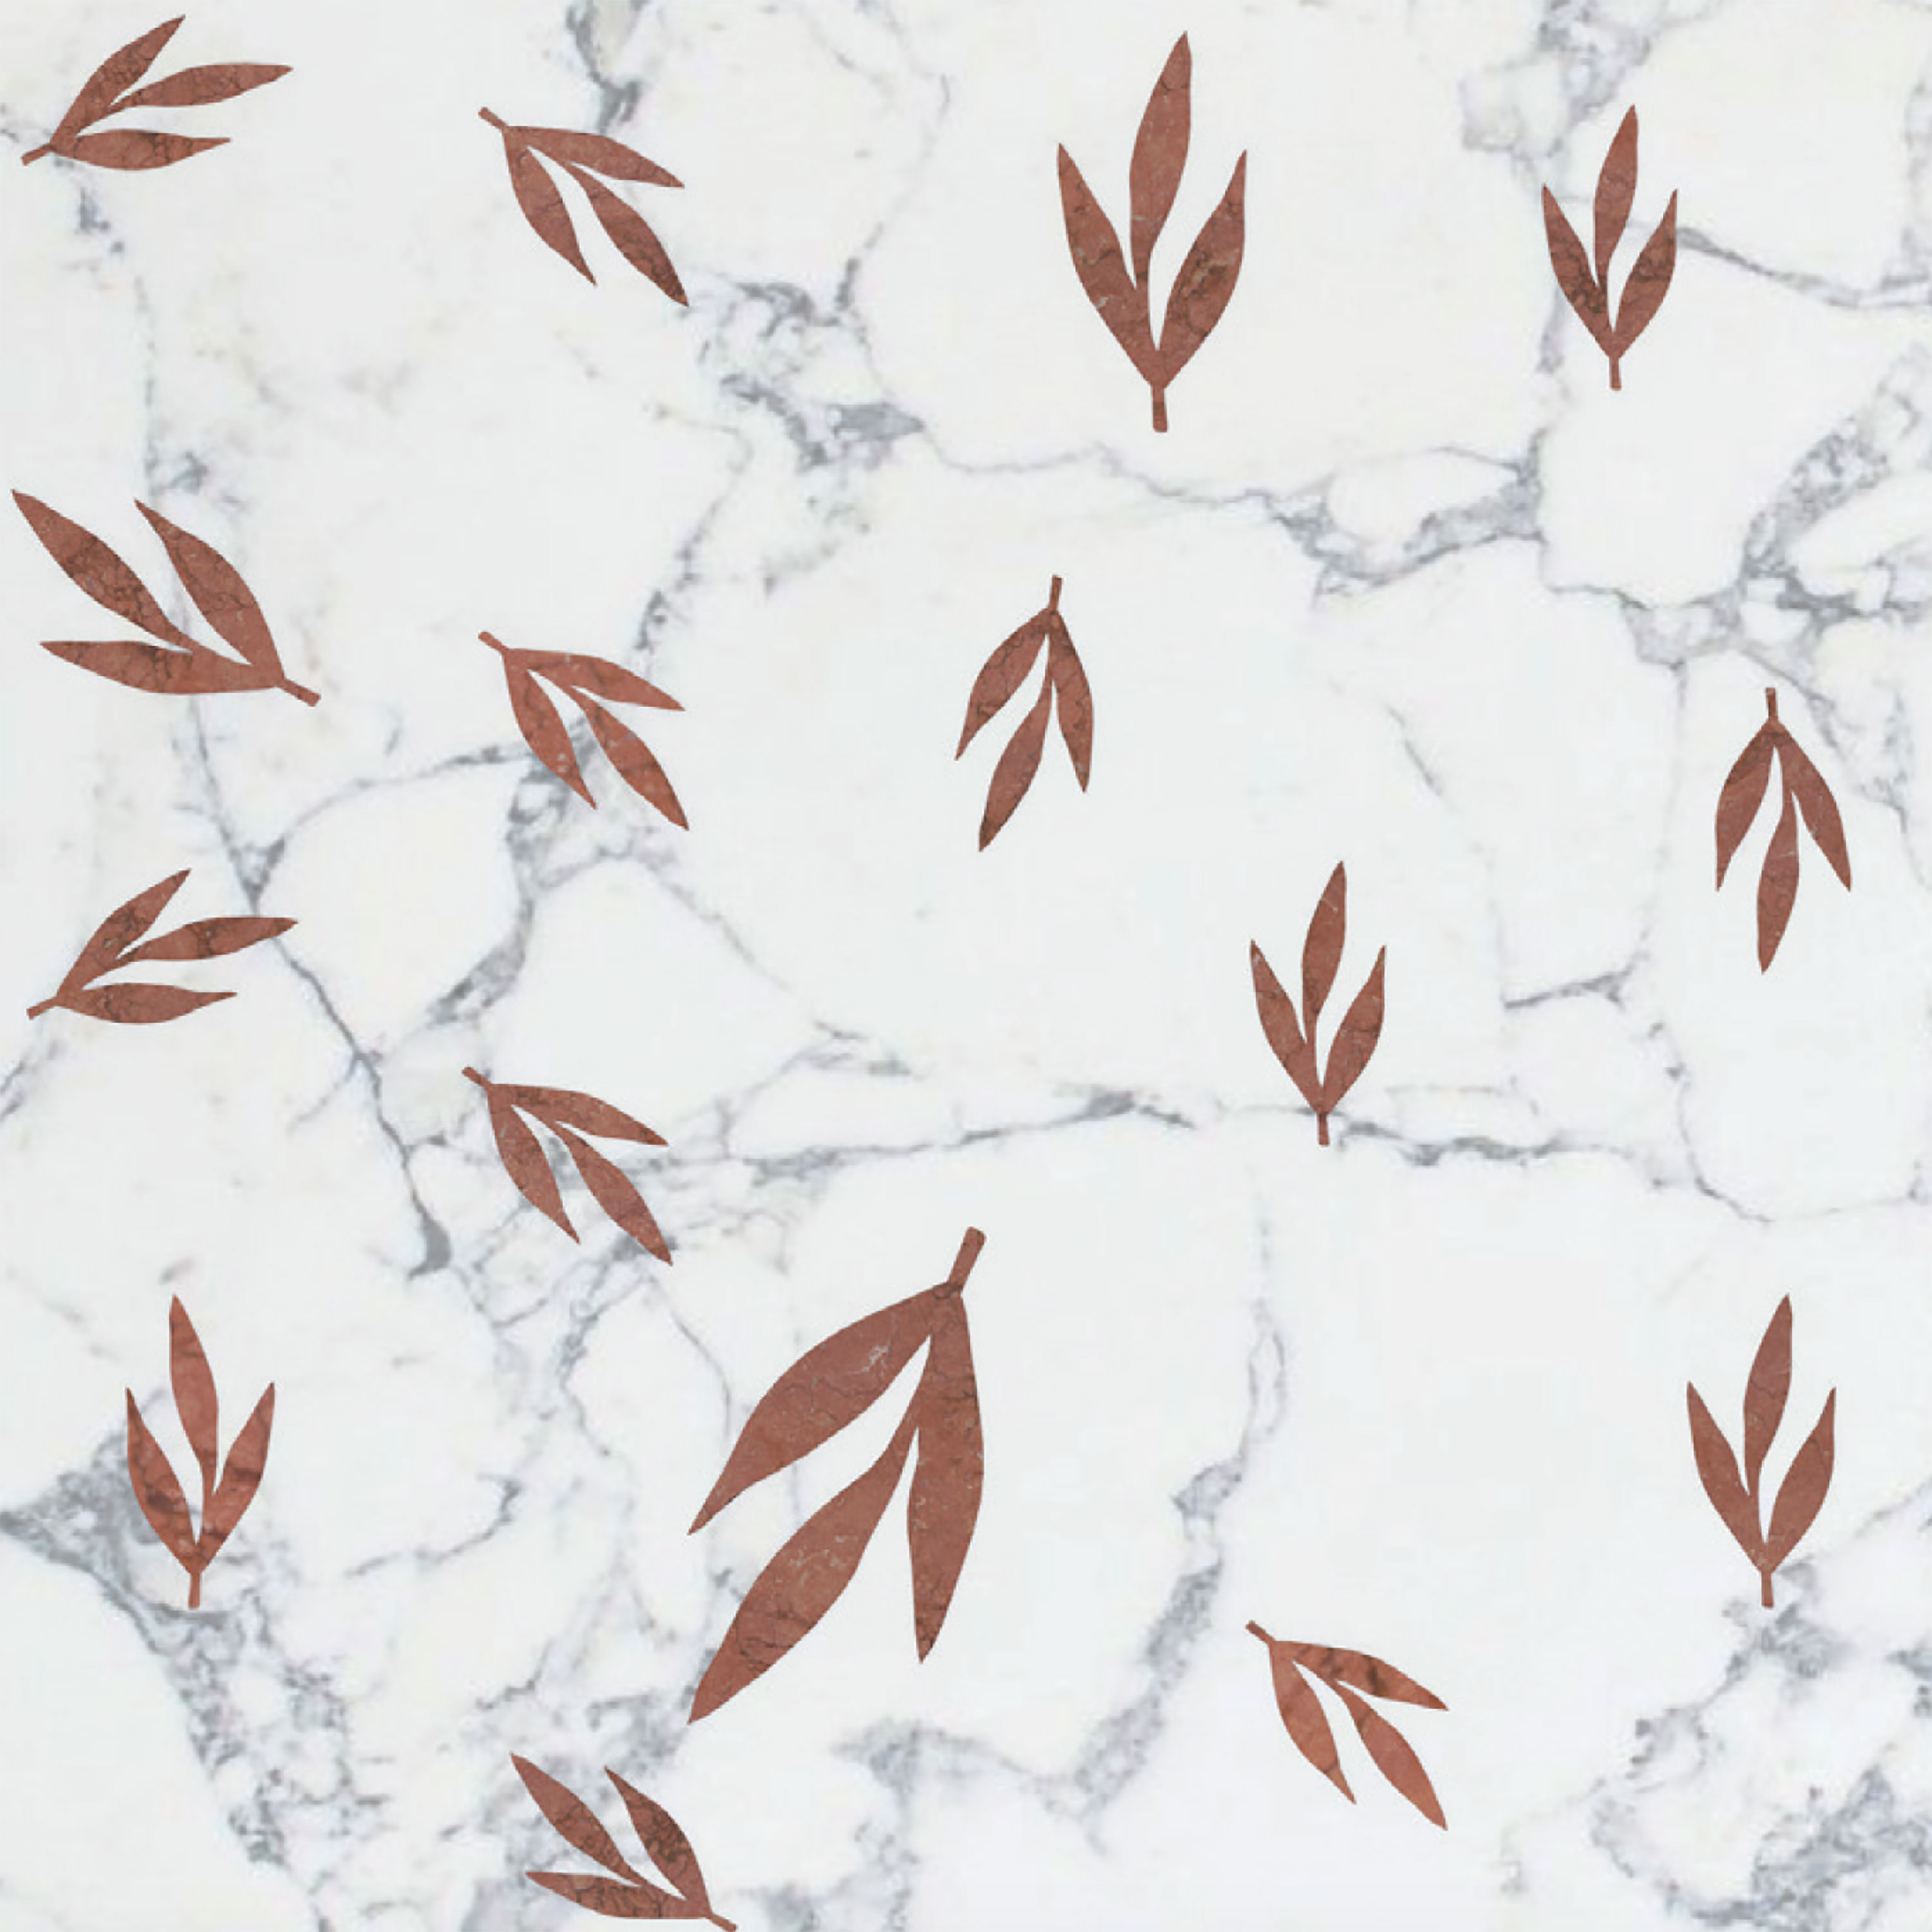 Leaves Red - Ma.C.S. combines artisan crafted production with industrial processing powered by numerical control machines. This is demonstrated by the new marble inlay covering collection. The research aims to integrate the classical idea of marble inlay (combined in some cases with other materials such as wood and metal), with shapes, compositions and innovative, charming designs. All of that is rigorously made in Italy.  The 2017 collection is composed of tiles, large marble slabs and other architectural solutions. The design is characterised by both serial geometric sequences and eclectic surfaces, inspired by nature shapes and dreamlike dimensions.  The proposed coverings, both horizontal and vertical ones, are fully customizable in size and colors, according to client needs. | Matter of Stuff